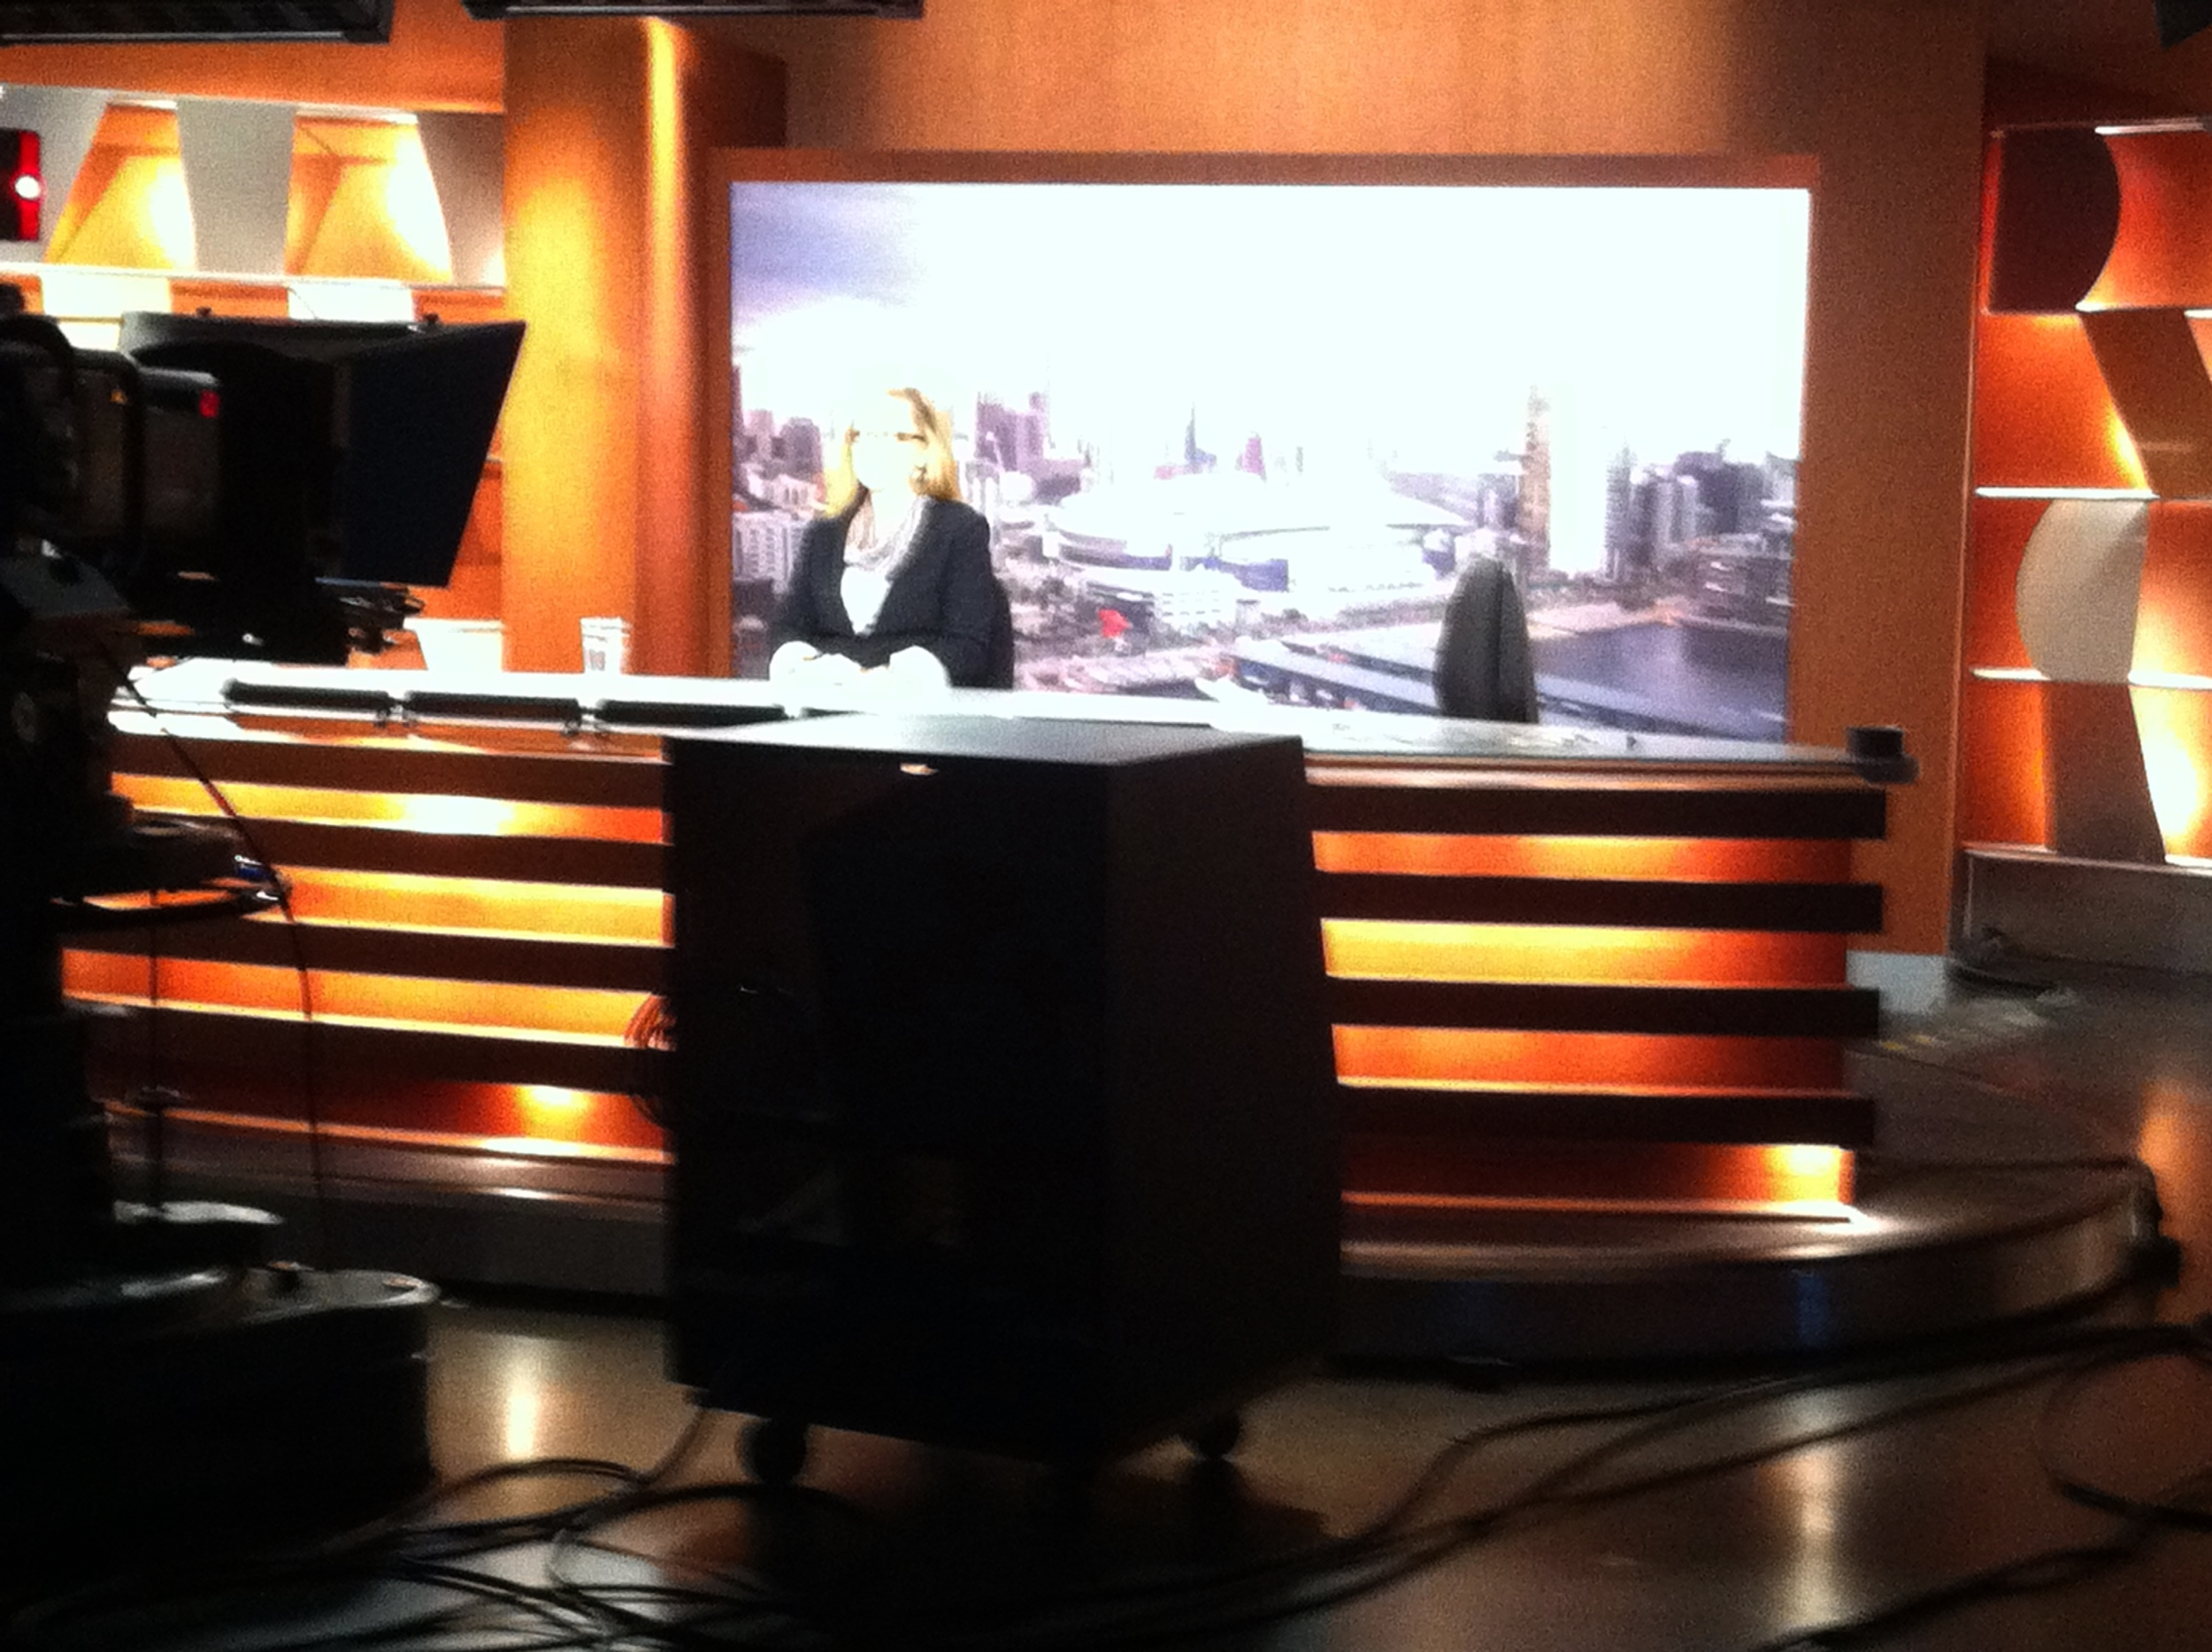 Ready for her live cross on the afternoon news